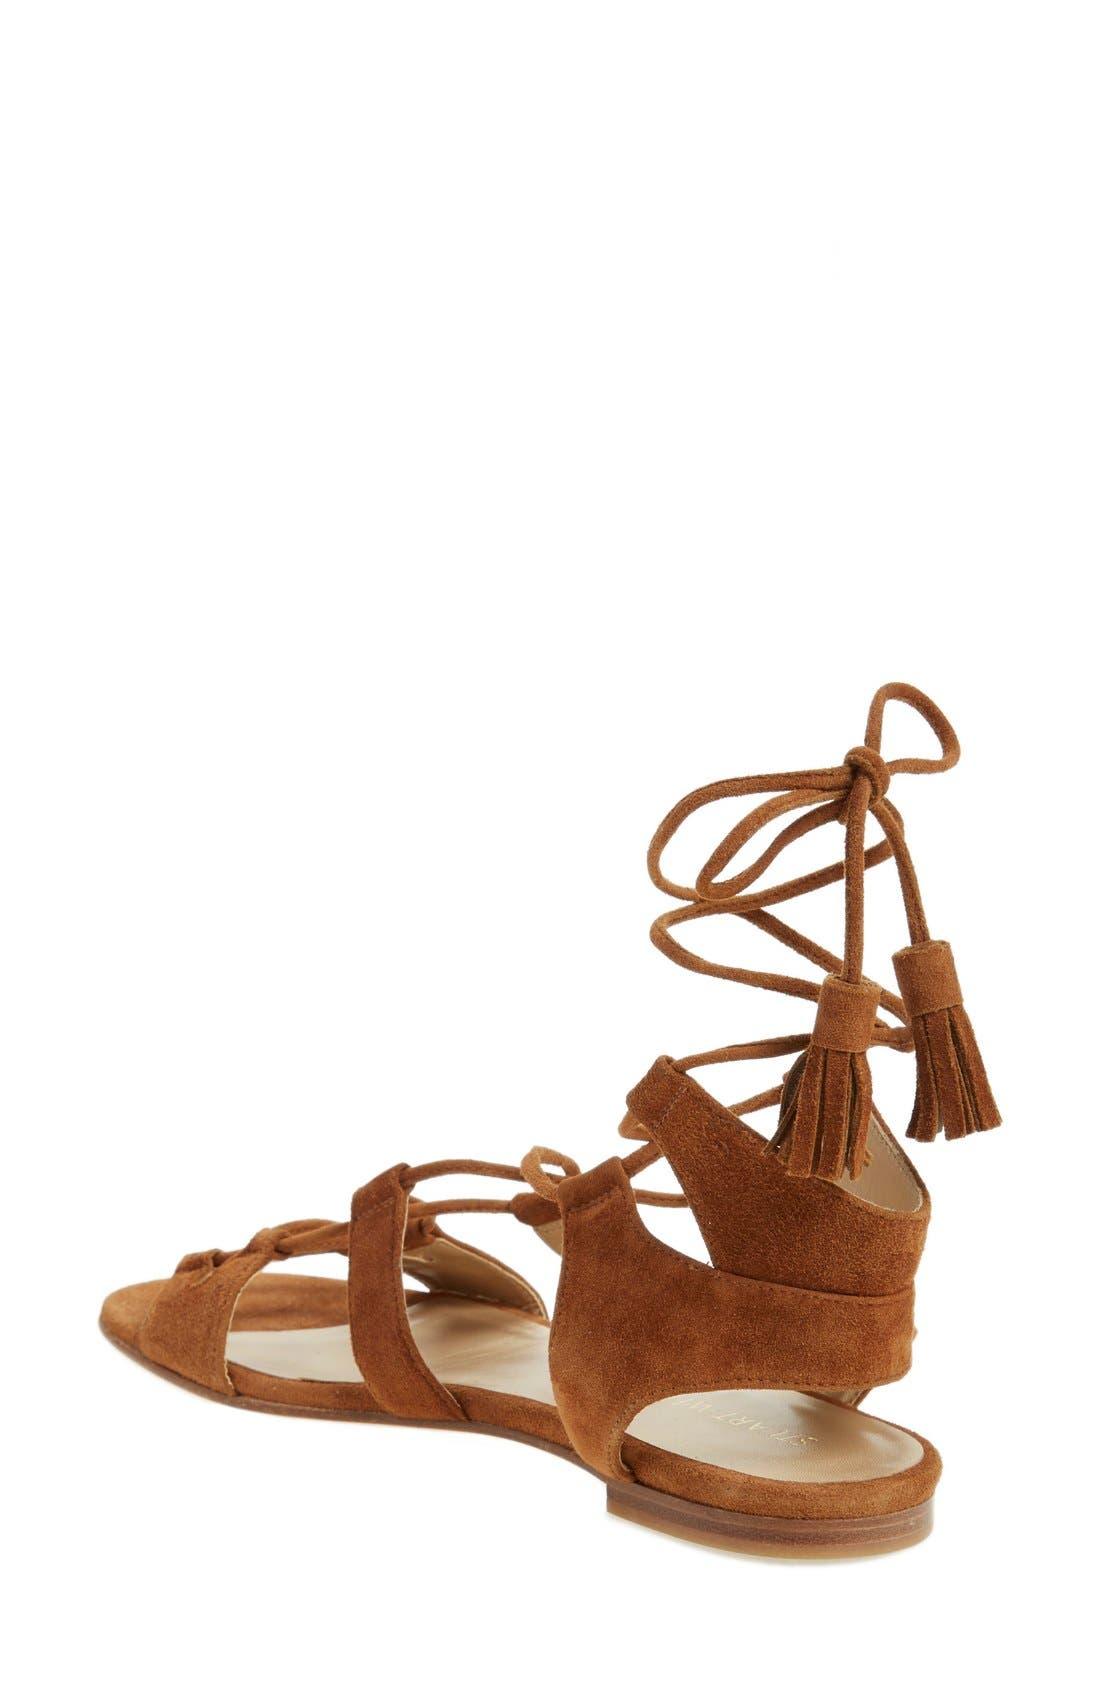 'Romanflat' Ghillie Sandal,                             Alternate thumbnail 4, color,                             250